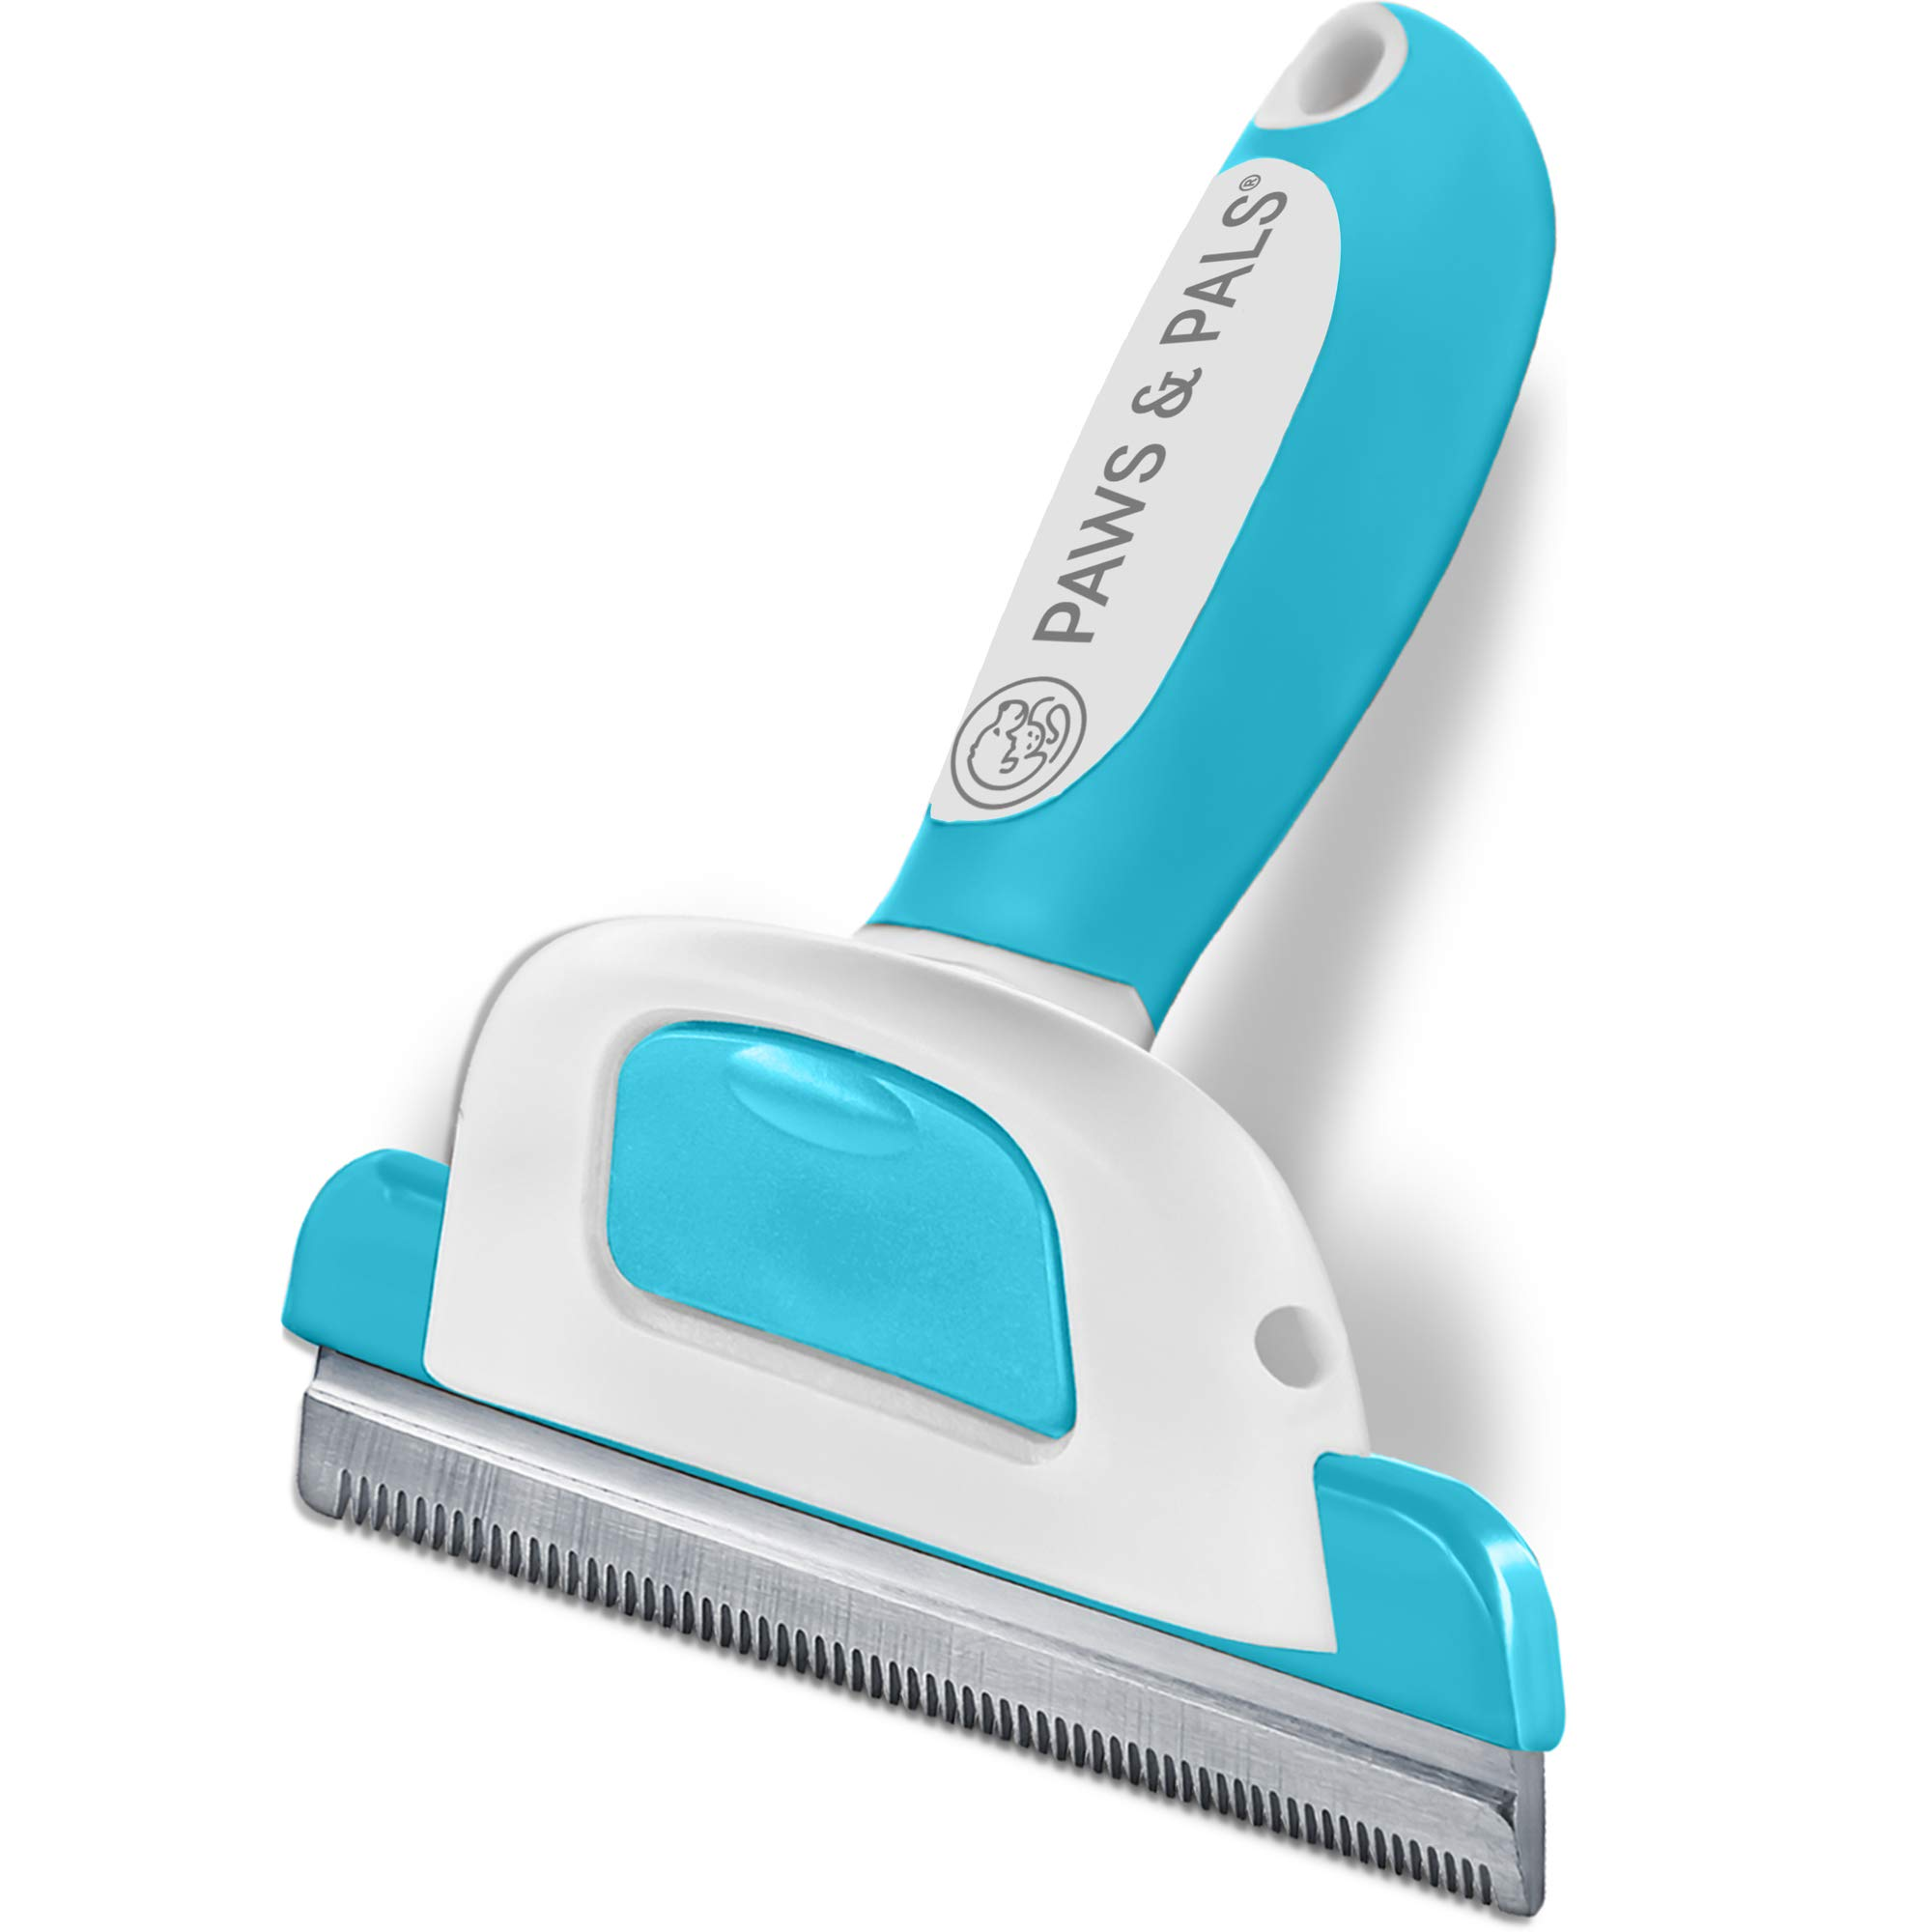 Paws & Pals Dog Brush - Gentle Soft Hair Rake Trimming Comb - Best for Shedding Dogs-Cats, Thick Long Short Haired Pet, Coat Grooming & Cat Hair Fur Removal - Self Cleaning - Deshedding Supplies